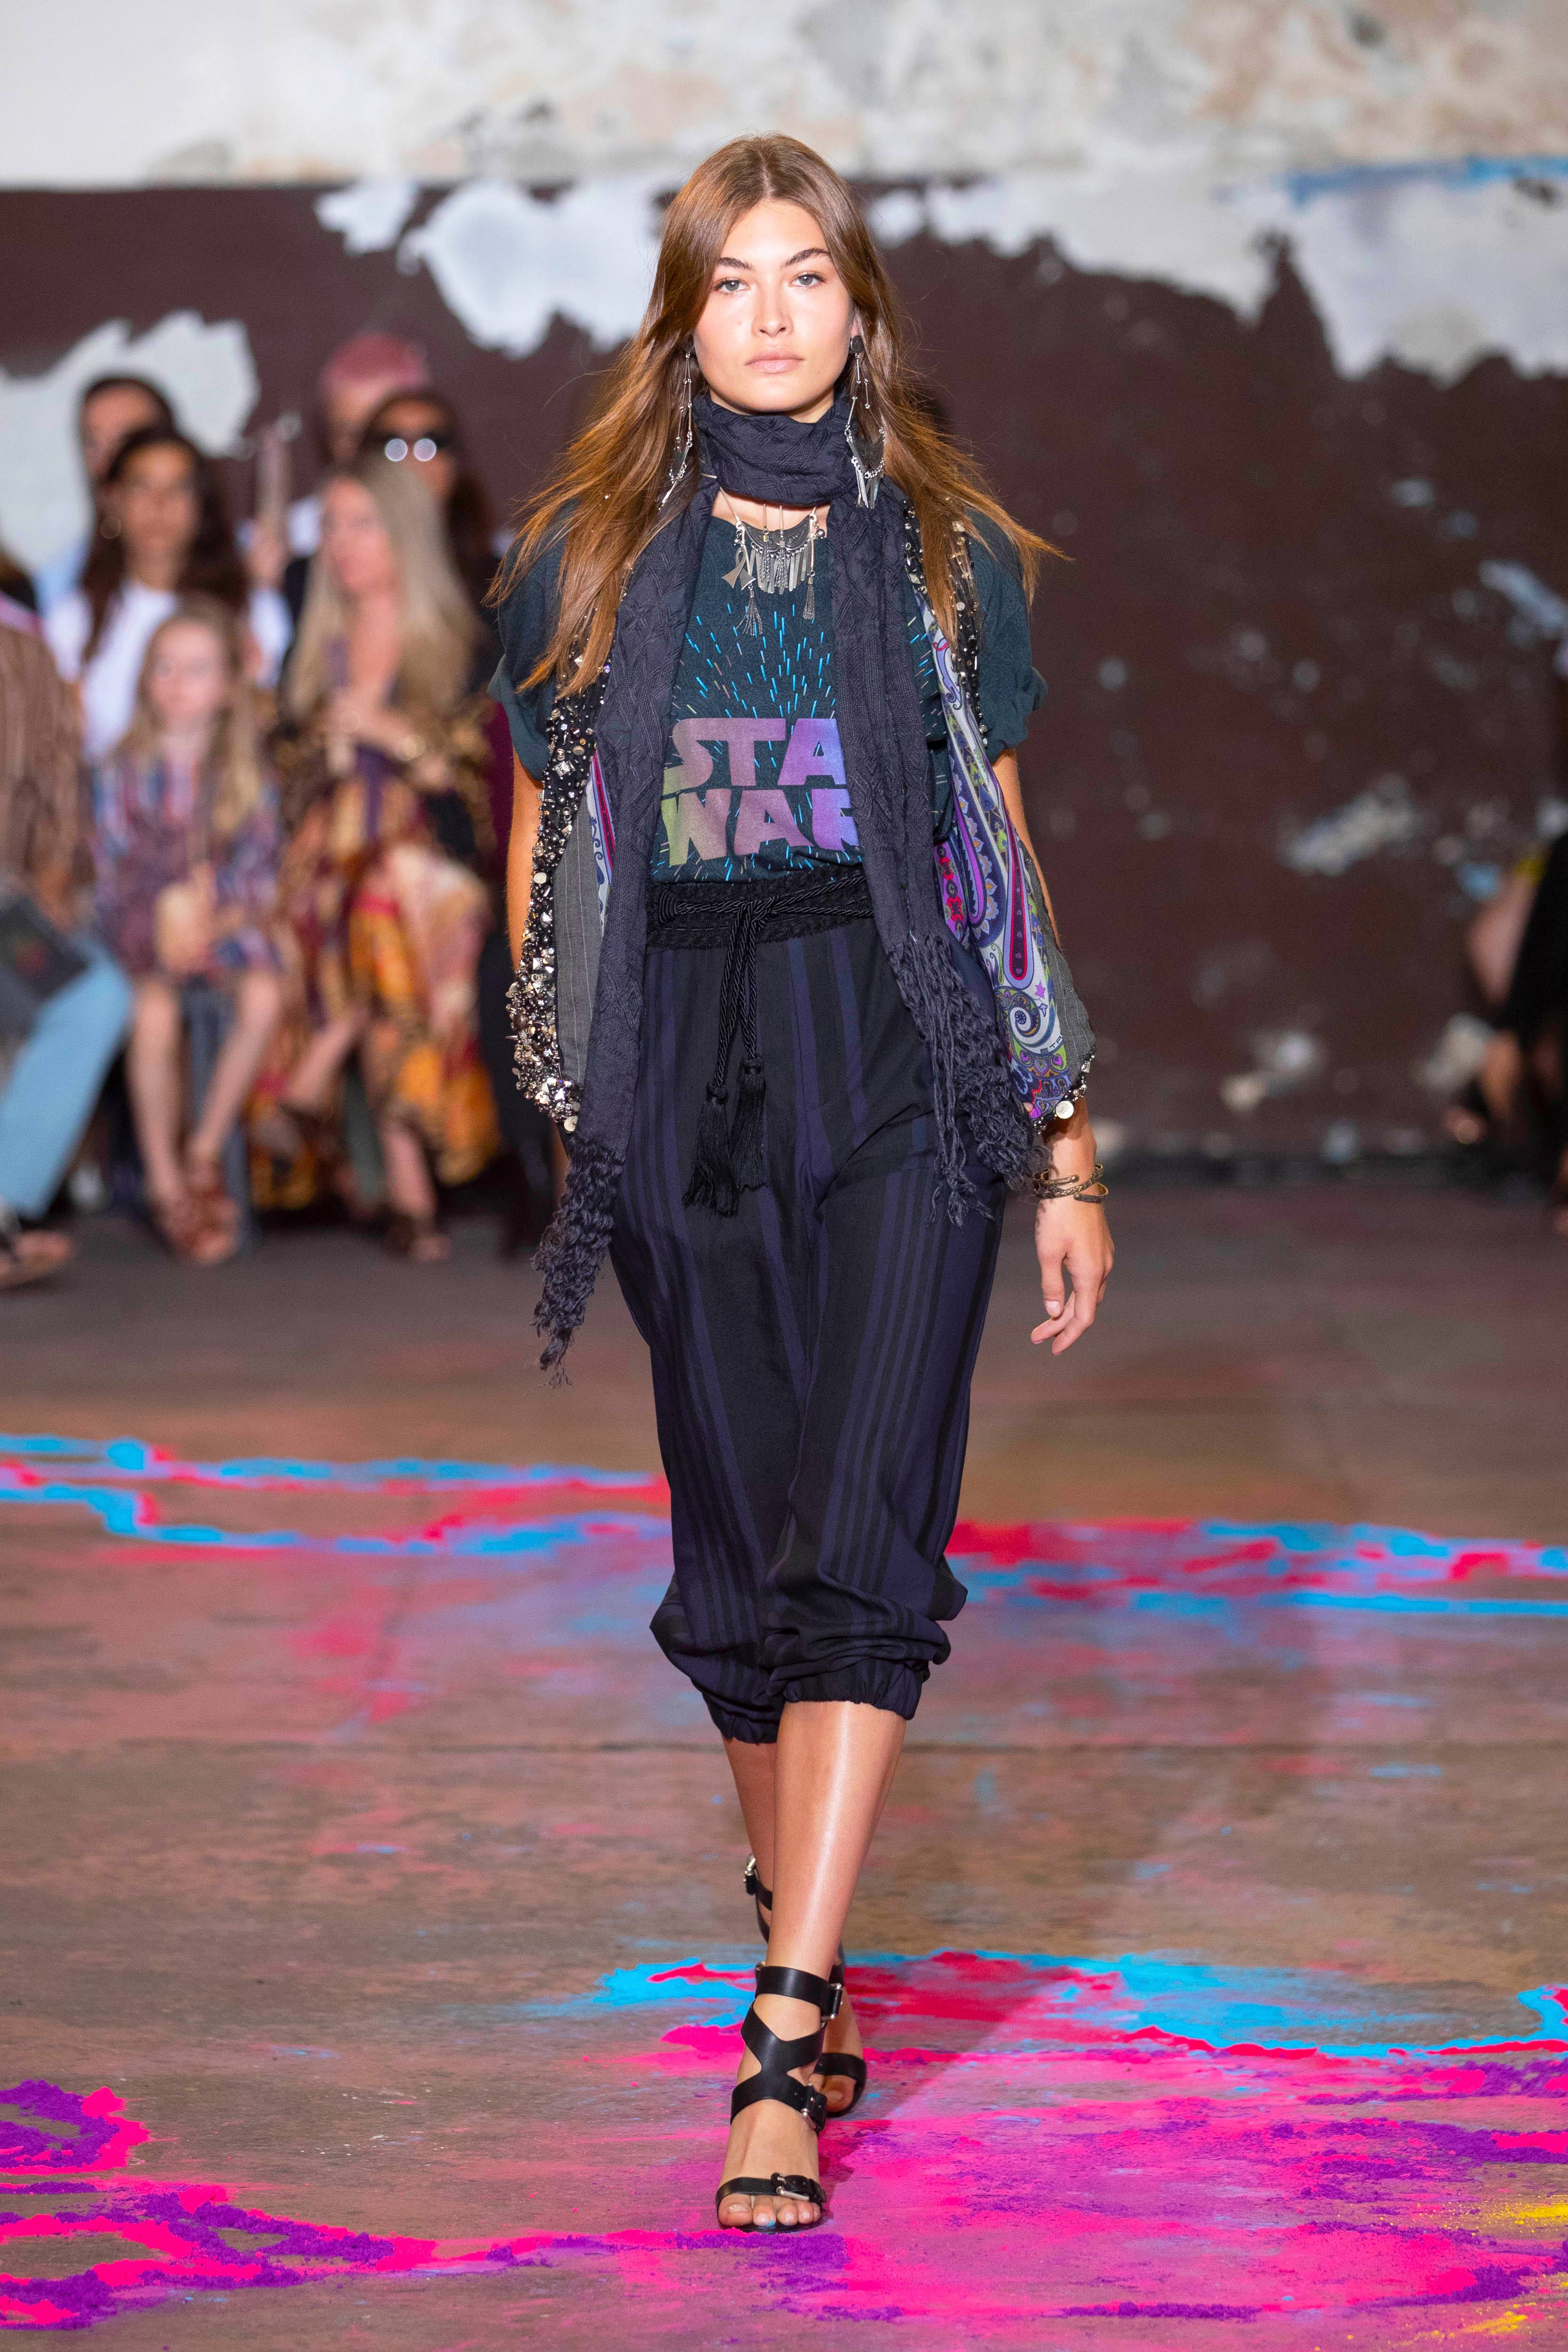 A runway look from the ETRO X STAR WARS Capsule Collection, featuring the black cotton T-shirt.